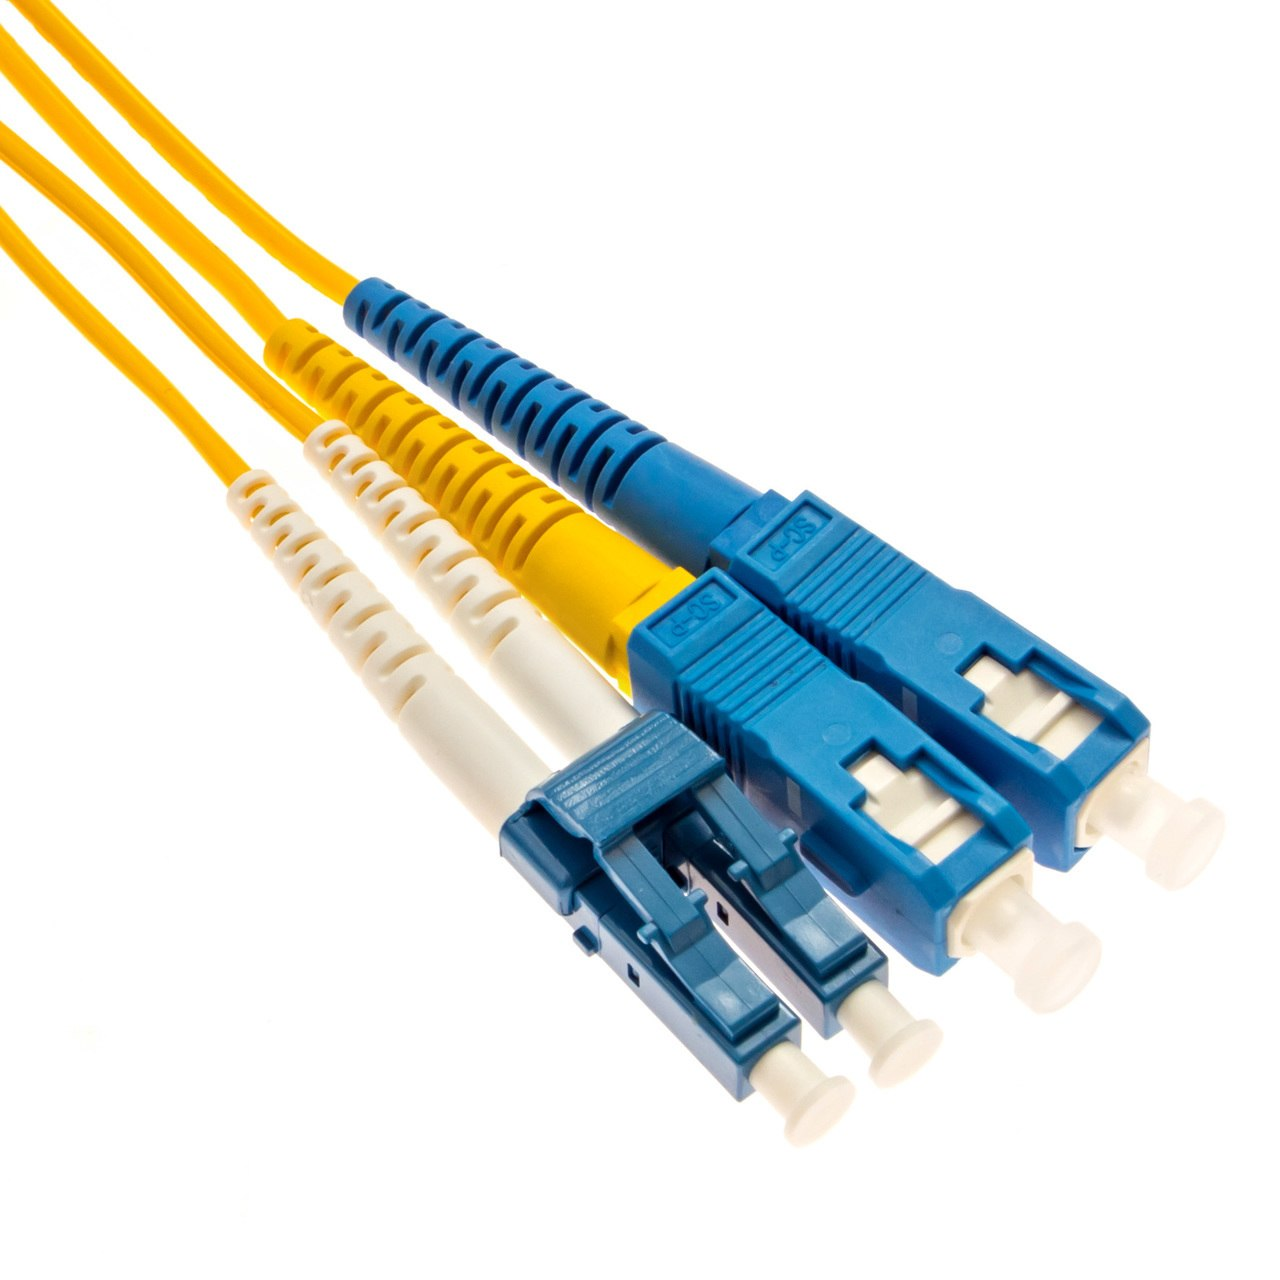 5 ft Cat5e Snagless RJ45 Plug RJ45 Plug SANOXY Network Cables SNX- SPC21996 Network Cable Yellow 1.5 m